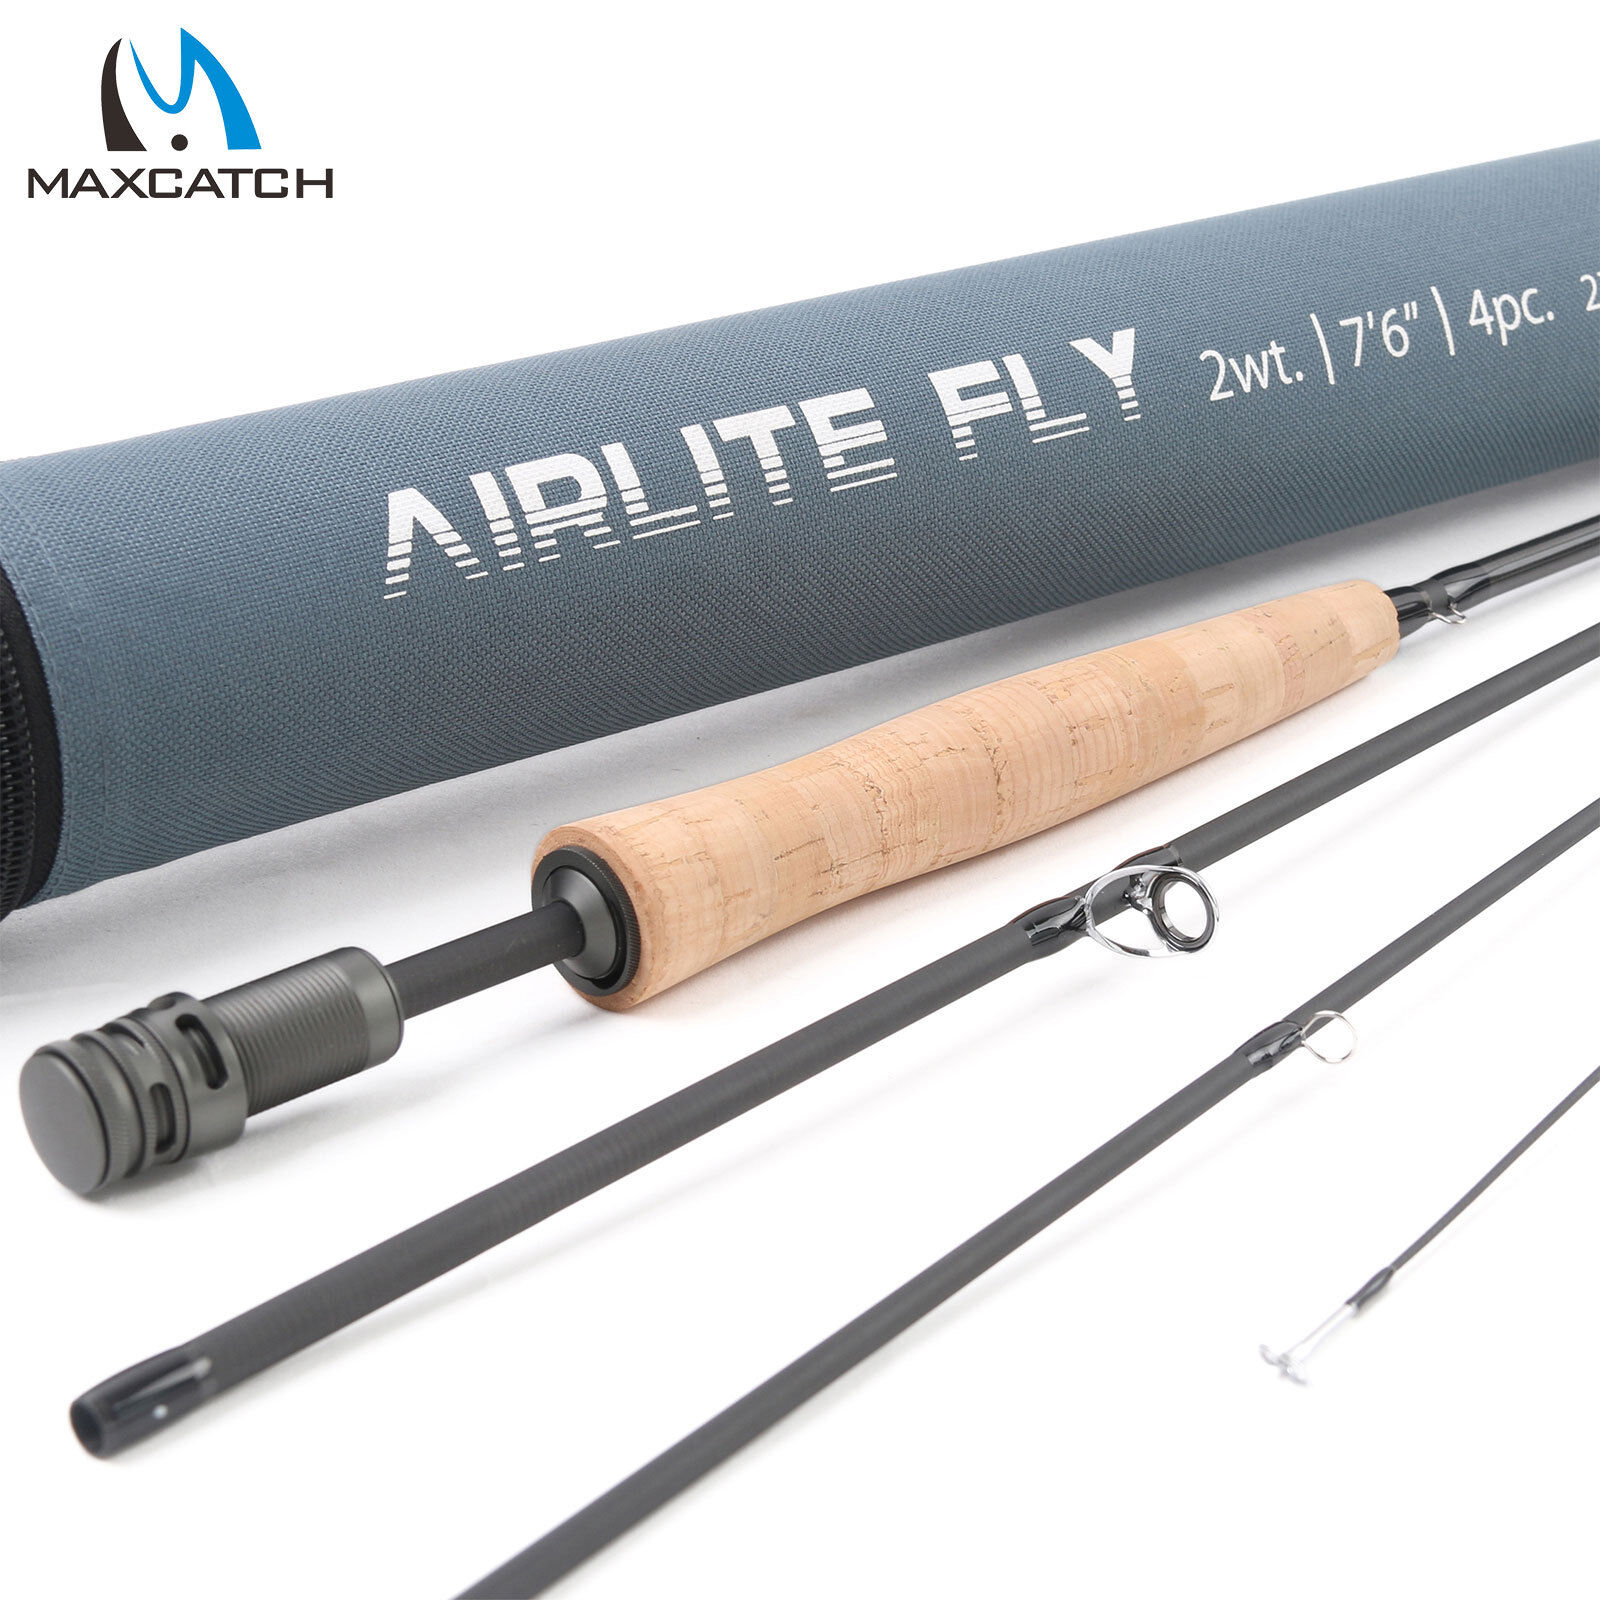 Maxcatch 2WT Fly Fishing Rod 7'6'' 4Sec MediumFast Action Graphite Light weight